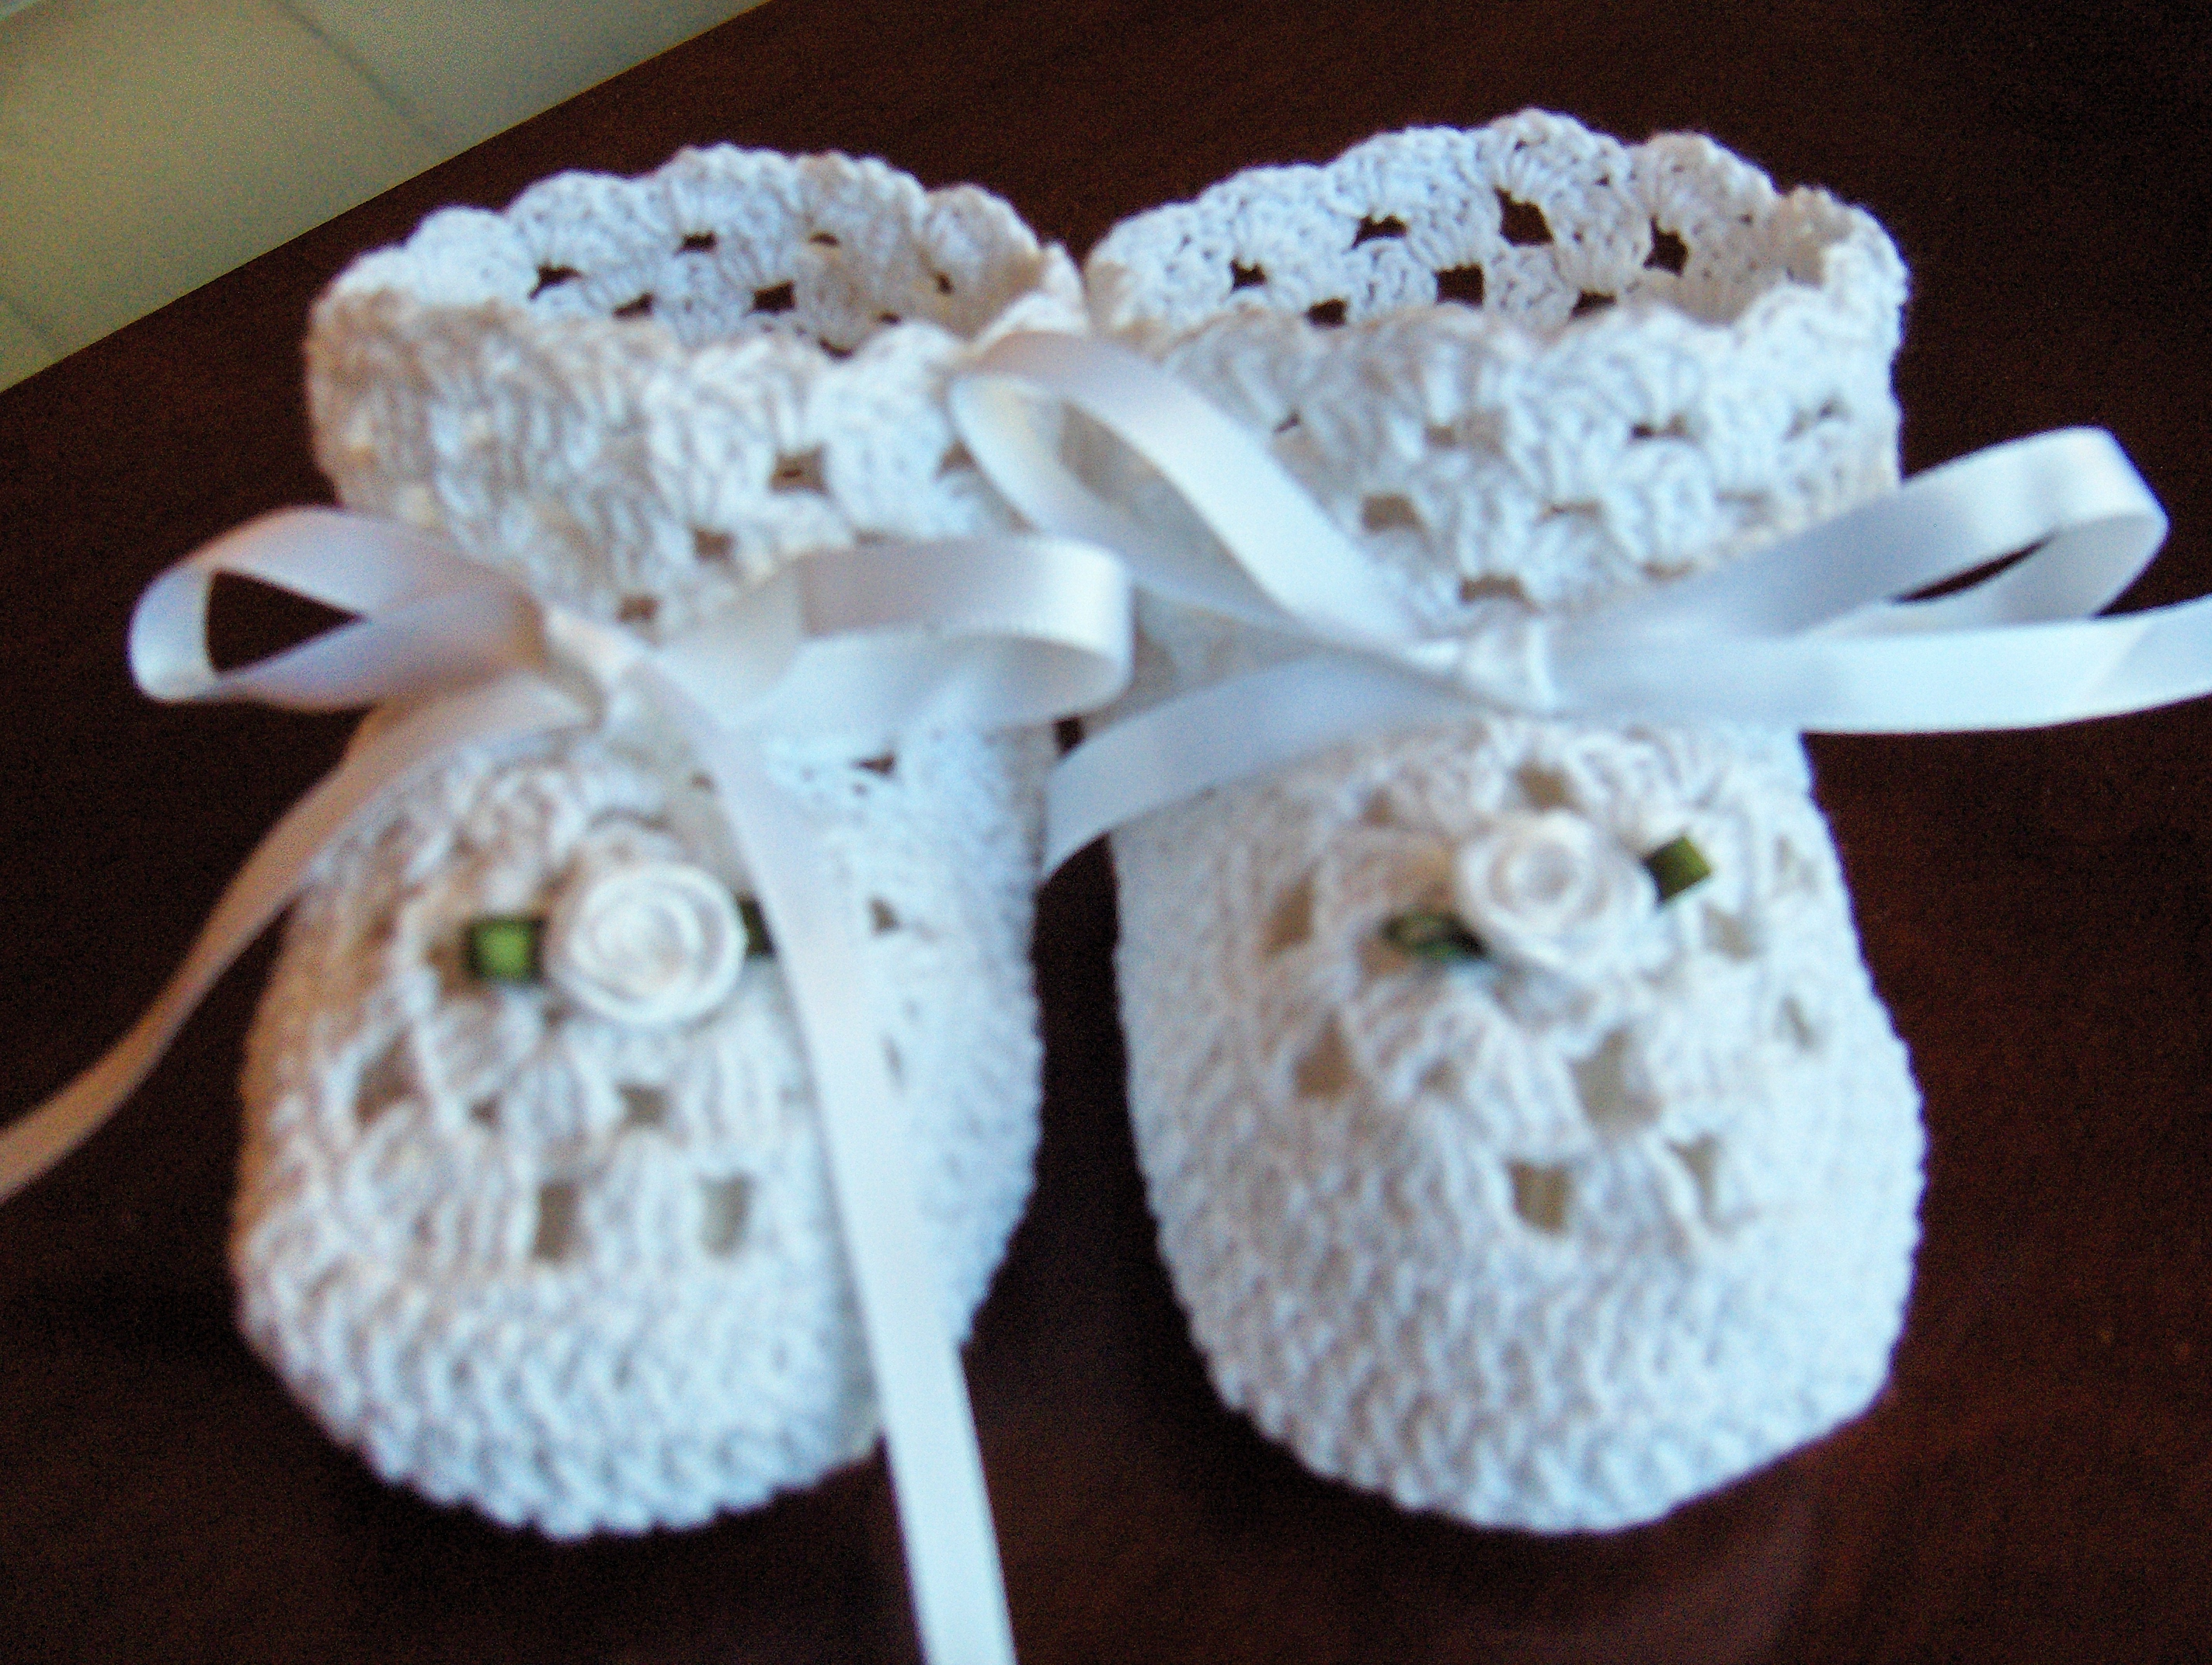 Free Crochet Patterns For Baby Converse Shoes : THREAD CROCHET CHRISTENING GOWN PATTERNS ? Easy Crochet ...